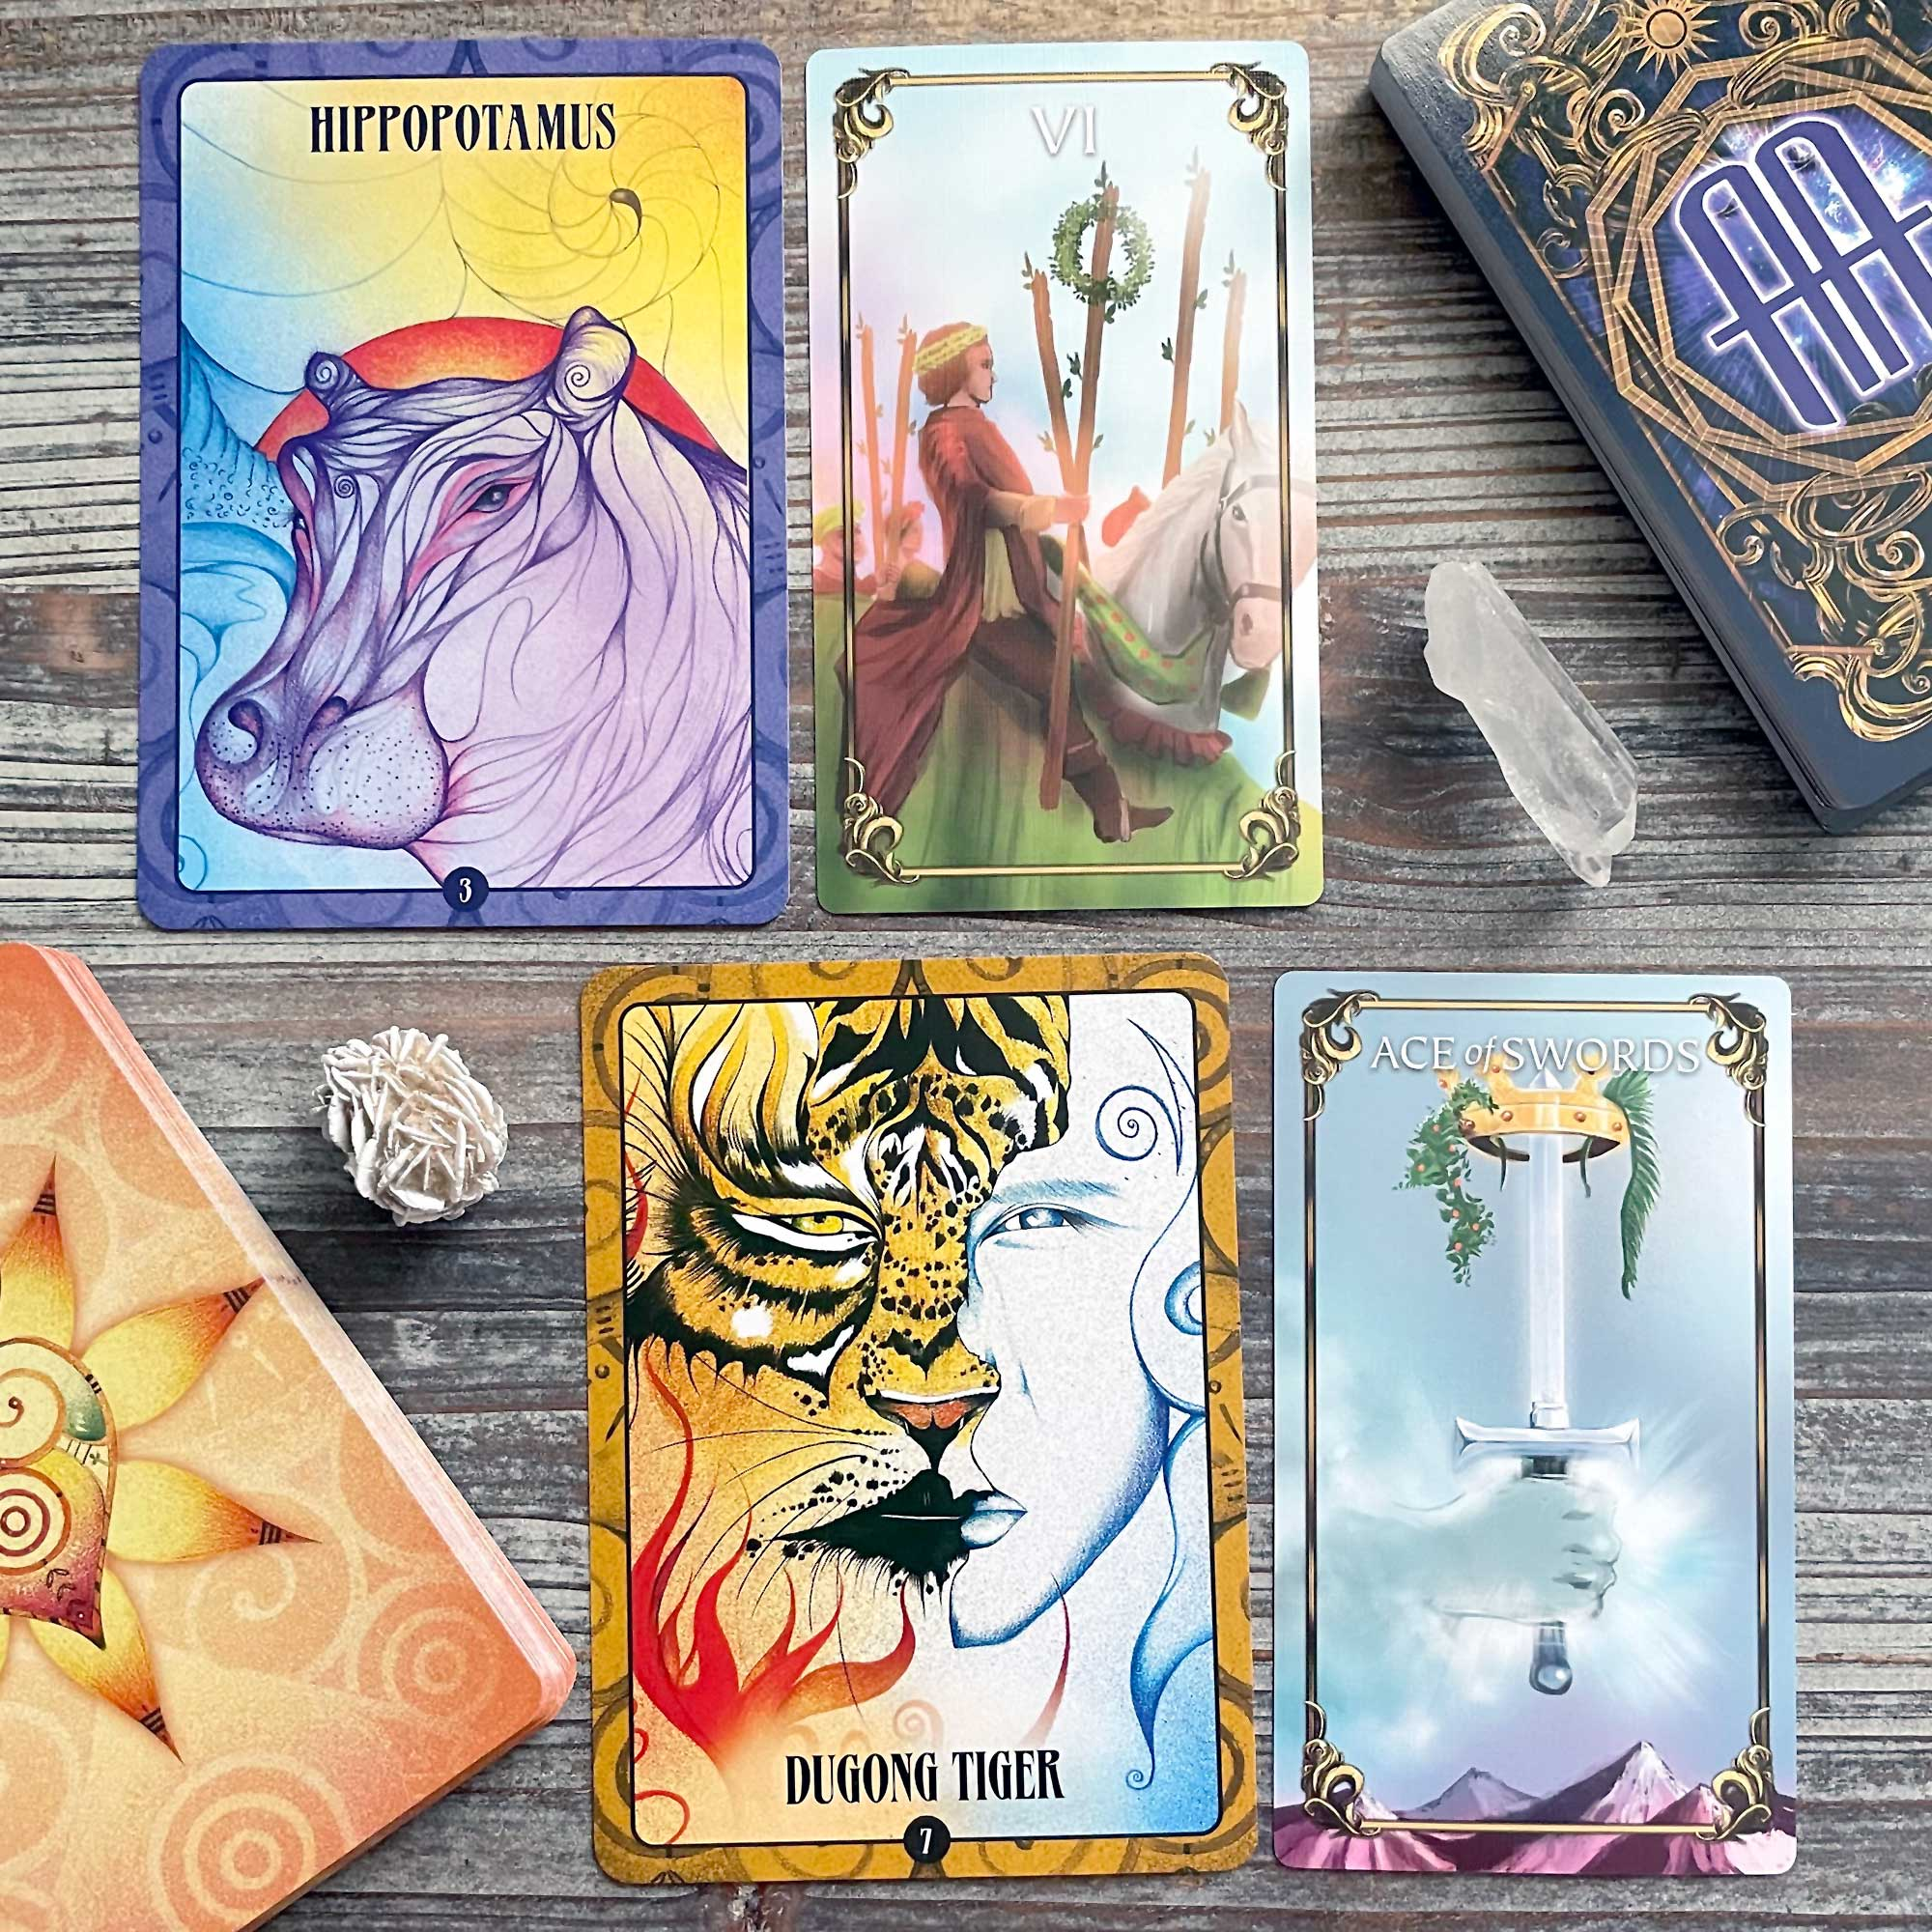 Ancient Animal Wisdom Cards and The Master Tarot